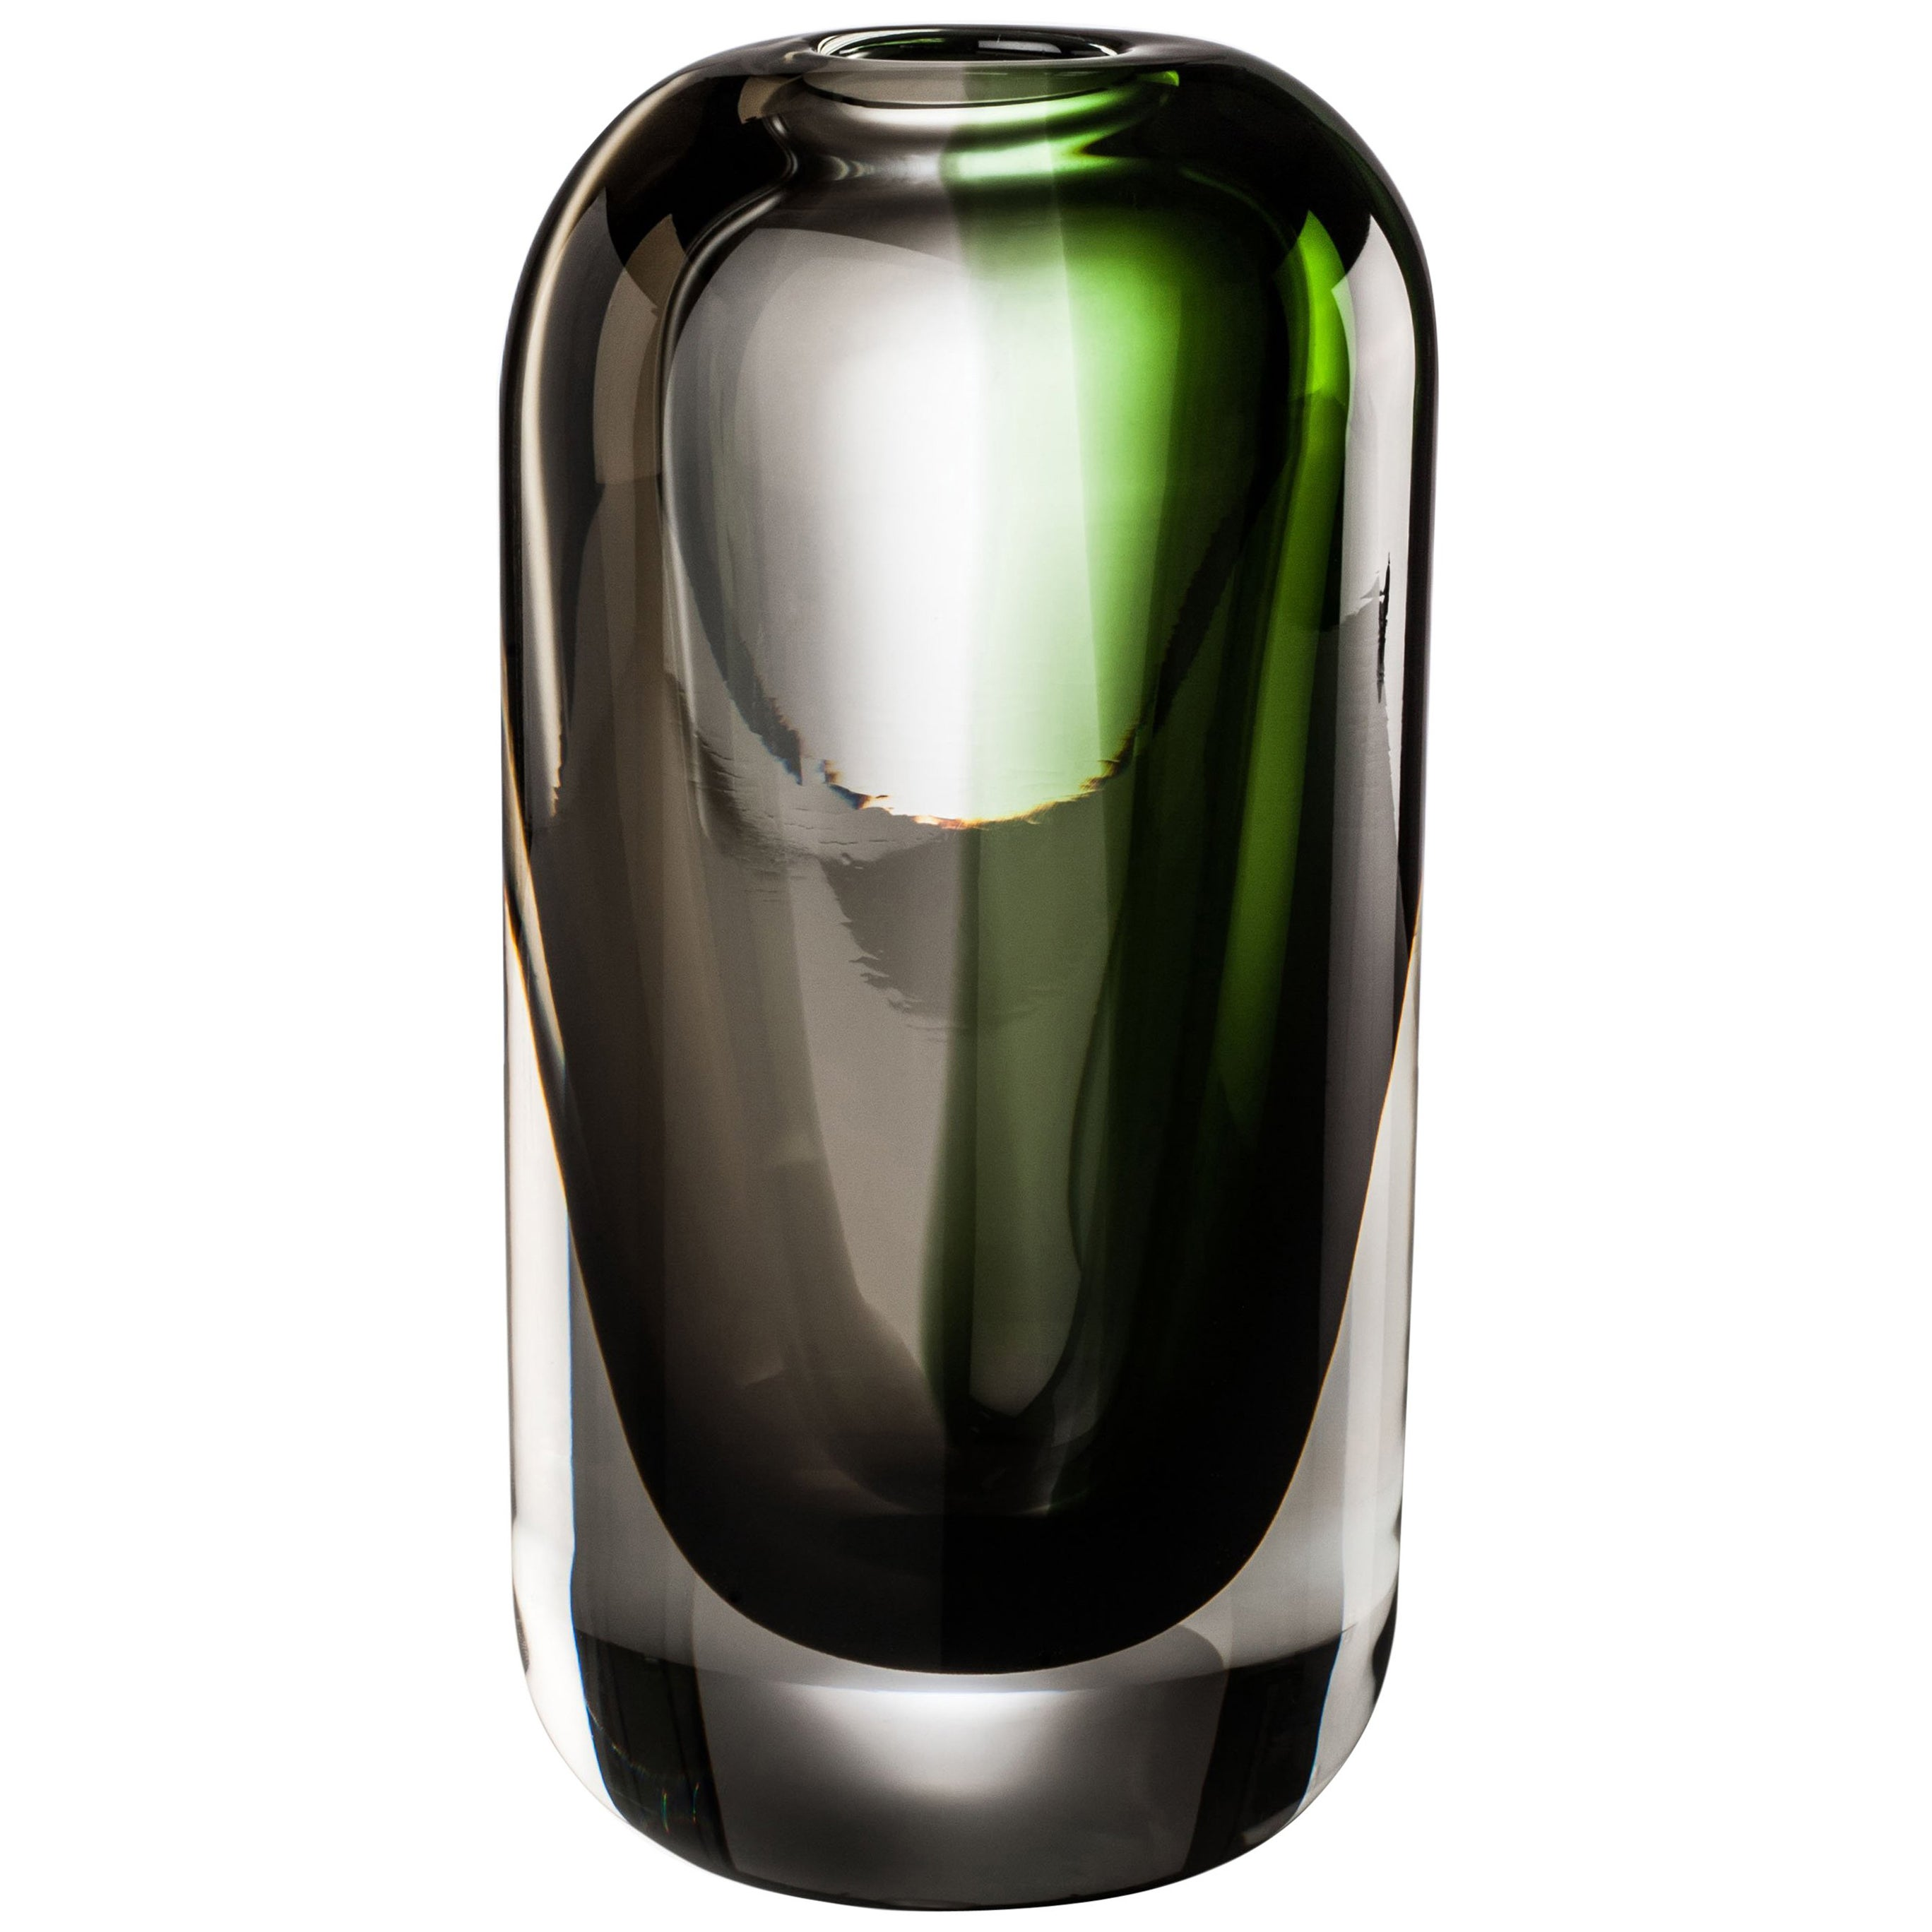 Venini Milano Cylinder Glass Vase in Green and Gray